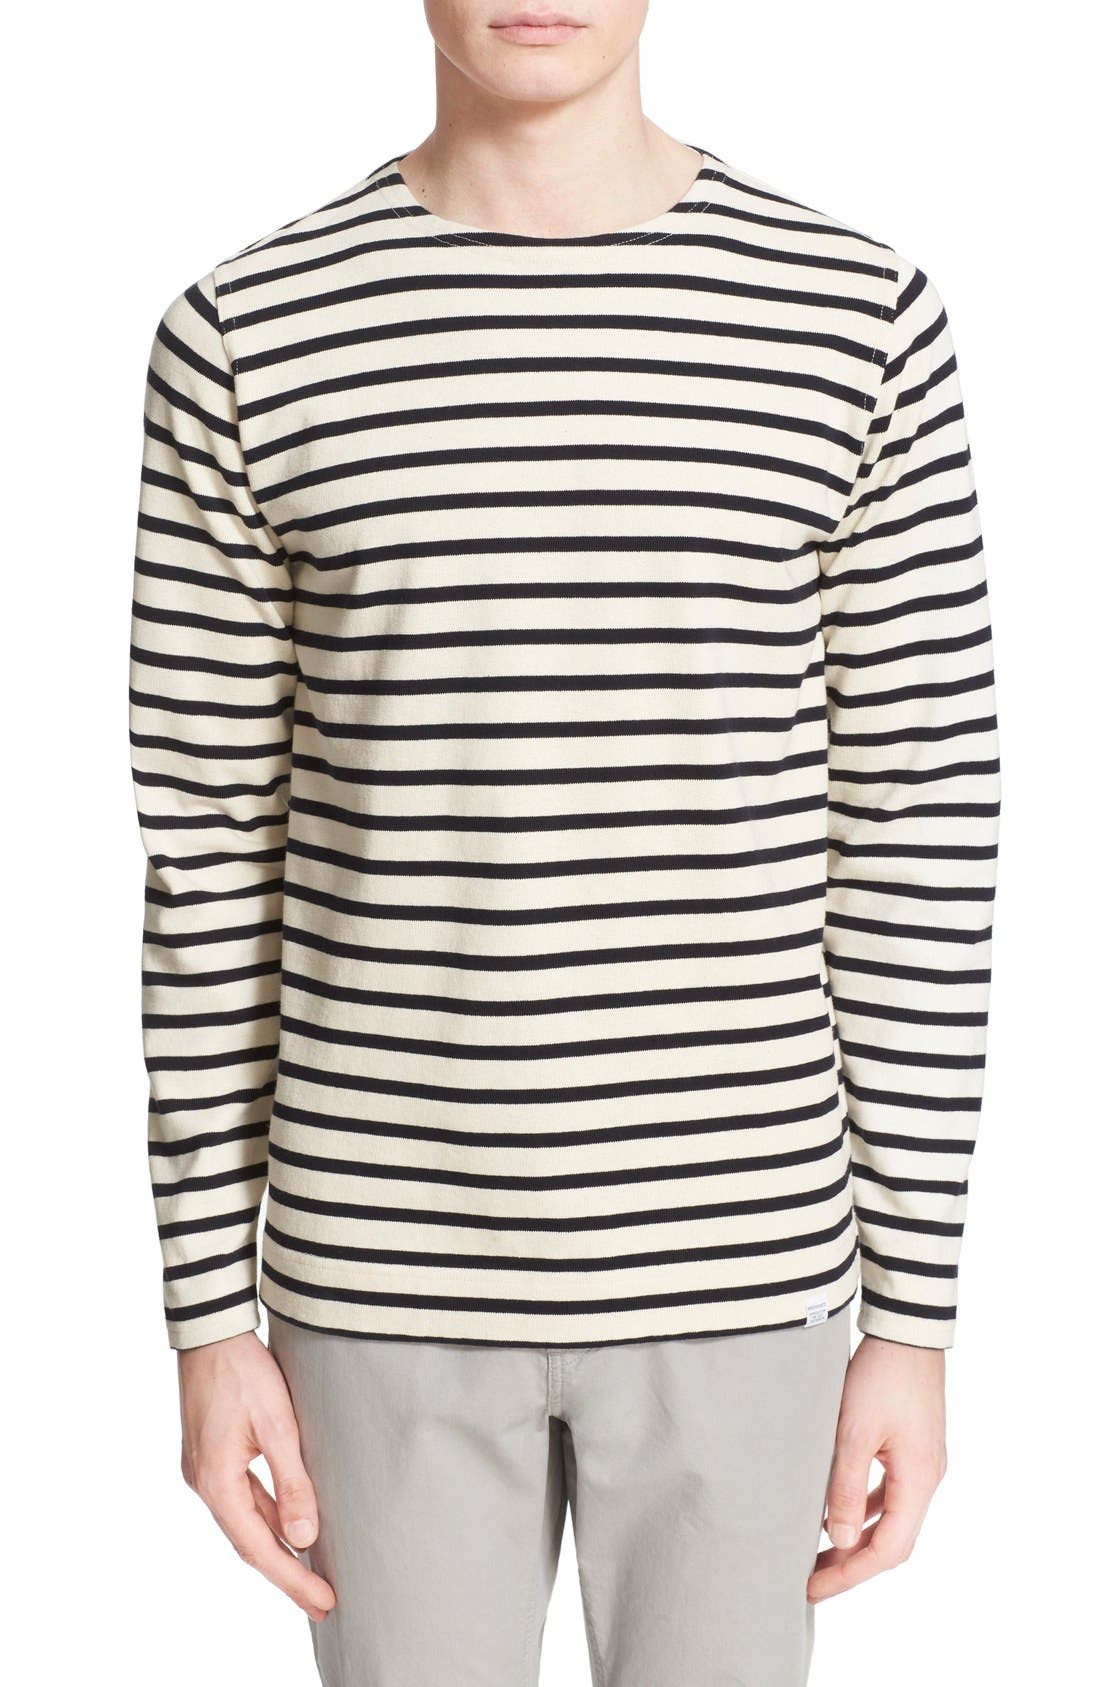 Alternate Image 1 Selected - Norse Projects 'Godtfred' Stripe Long Sleeve T-Shirt